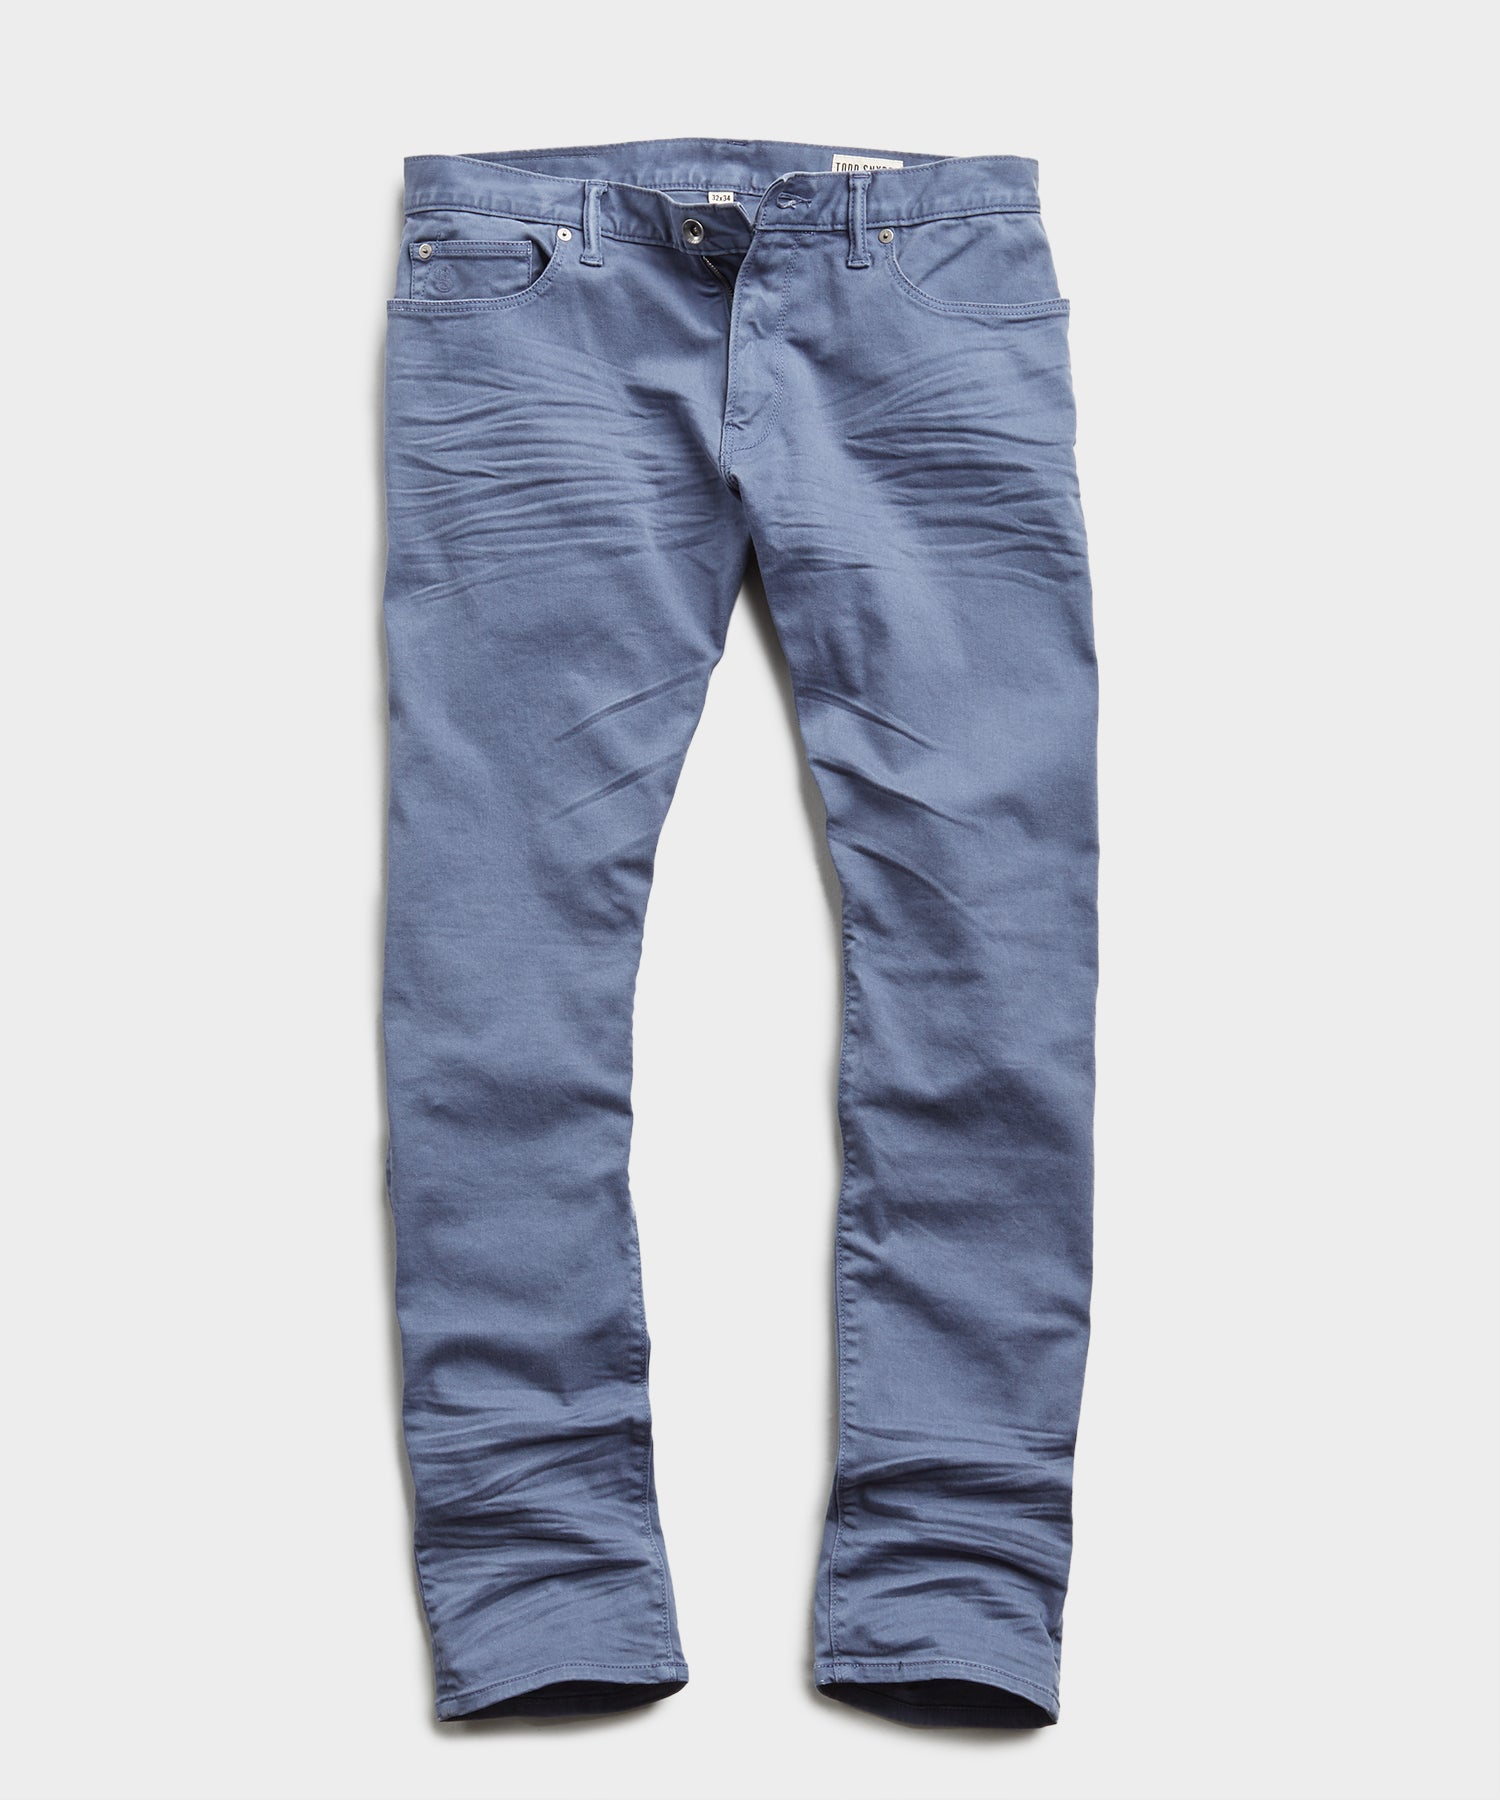 Todd Snyder five-pocket pants